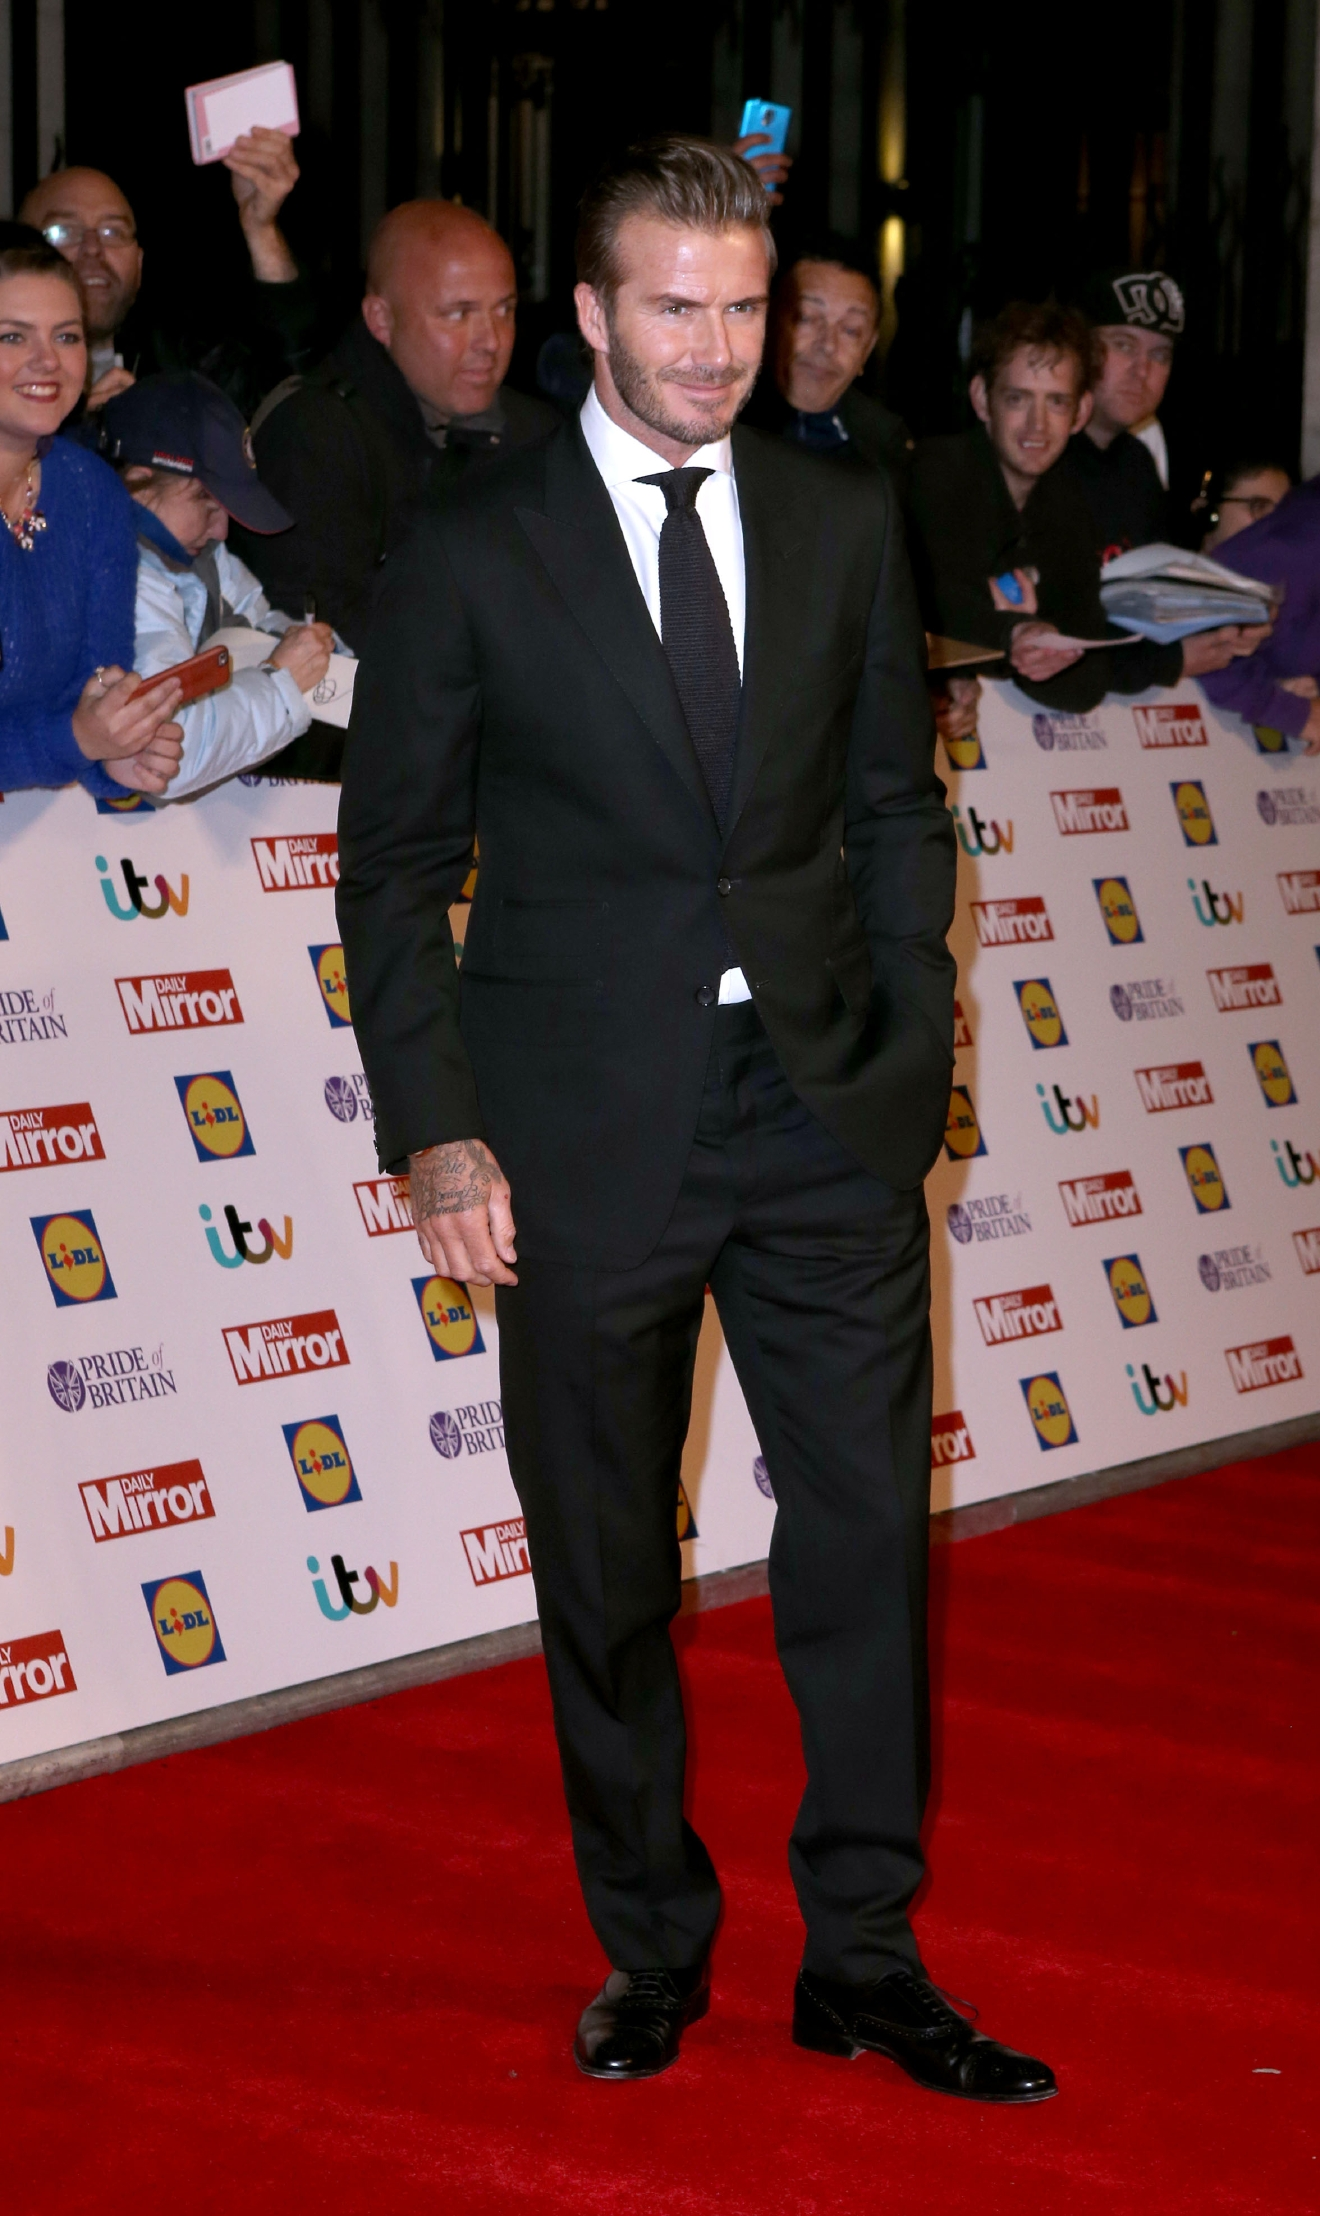 Pride of Britain Awards - arrivals at Grosvenor House  Featuring: David Beckham Where: London, United Kingdom When: 29 Sep 2015 Credit: Lexi Jones/WENN.com